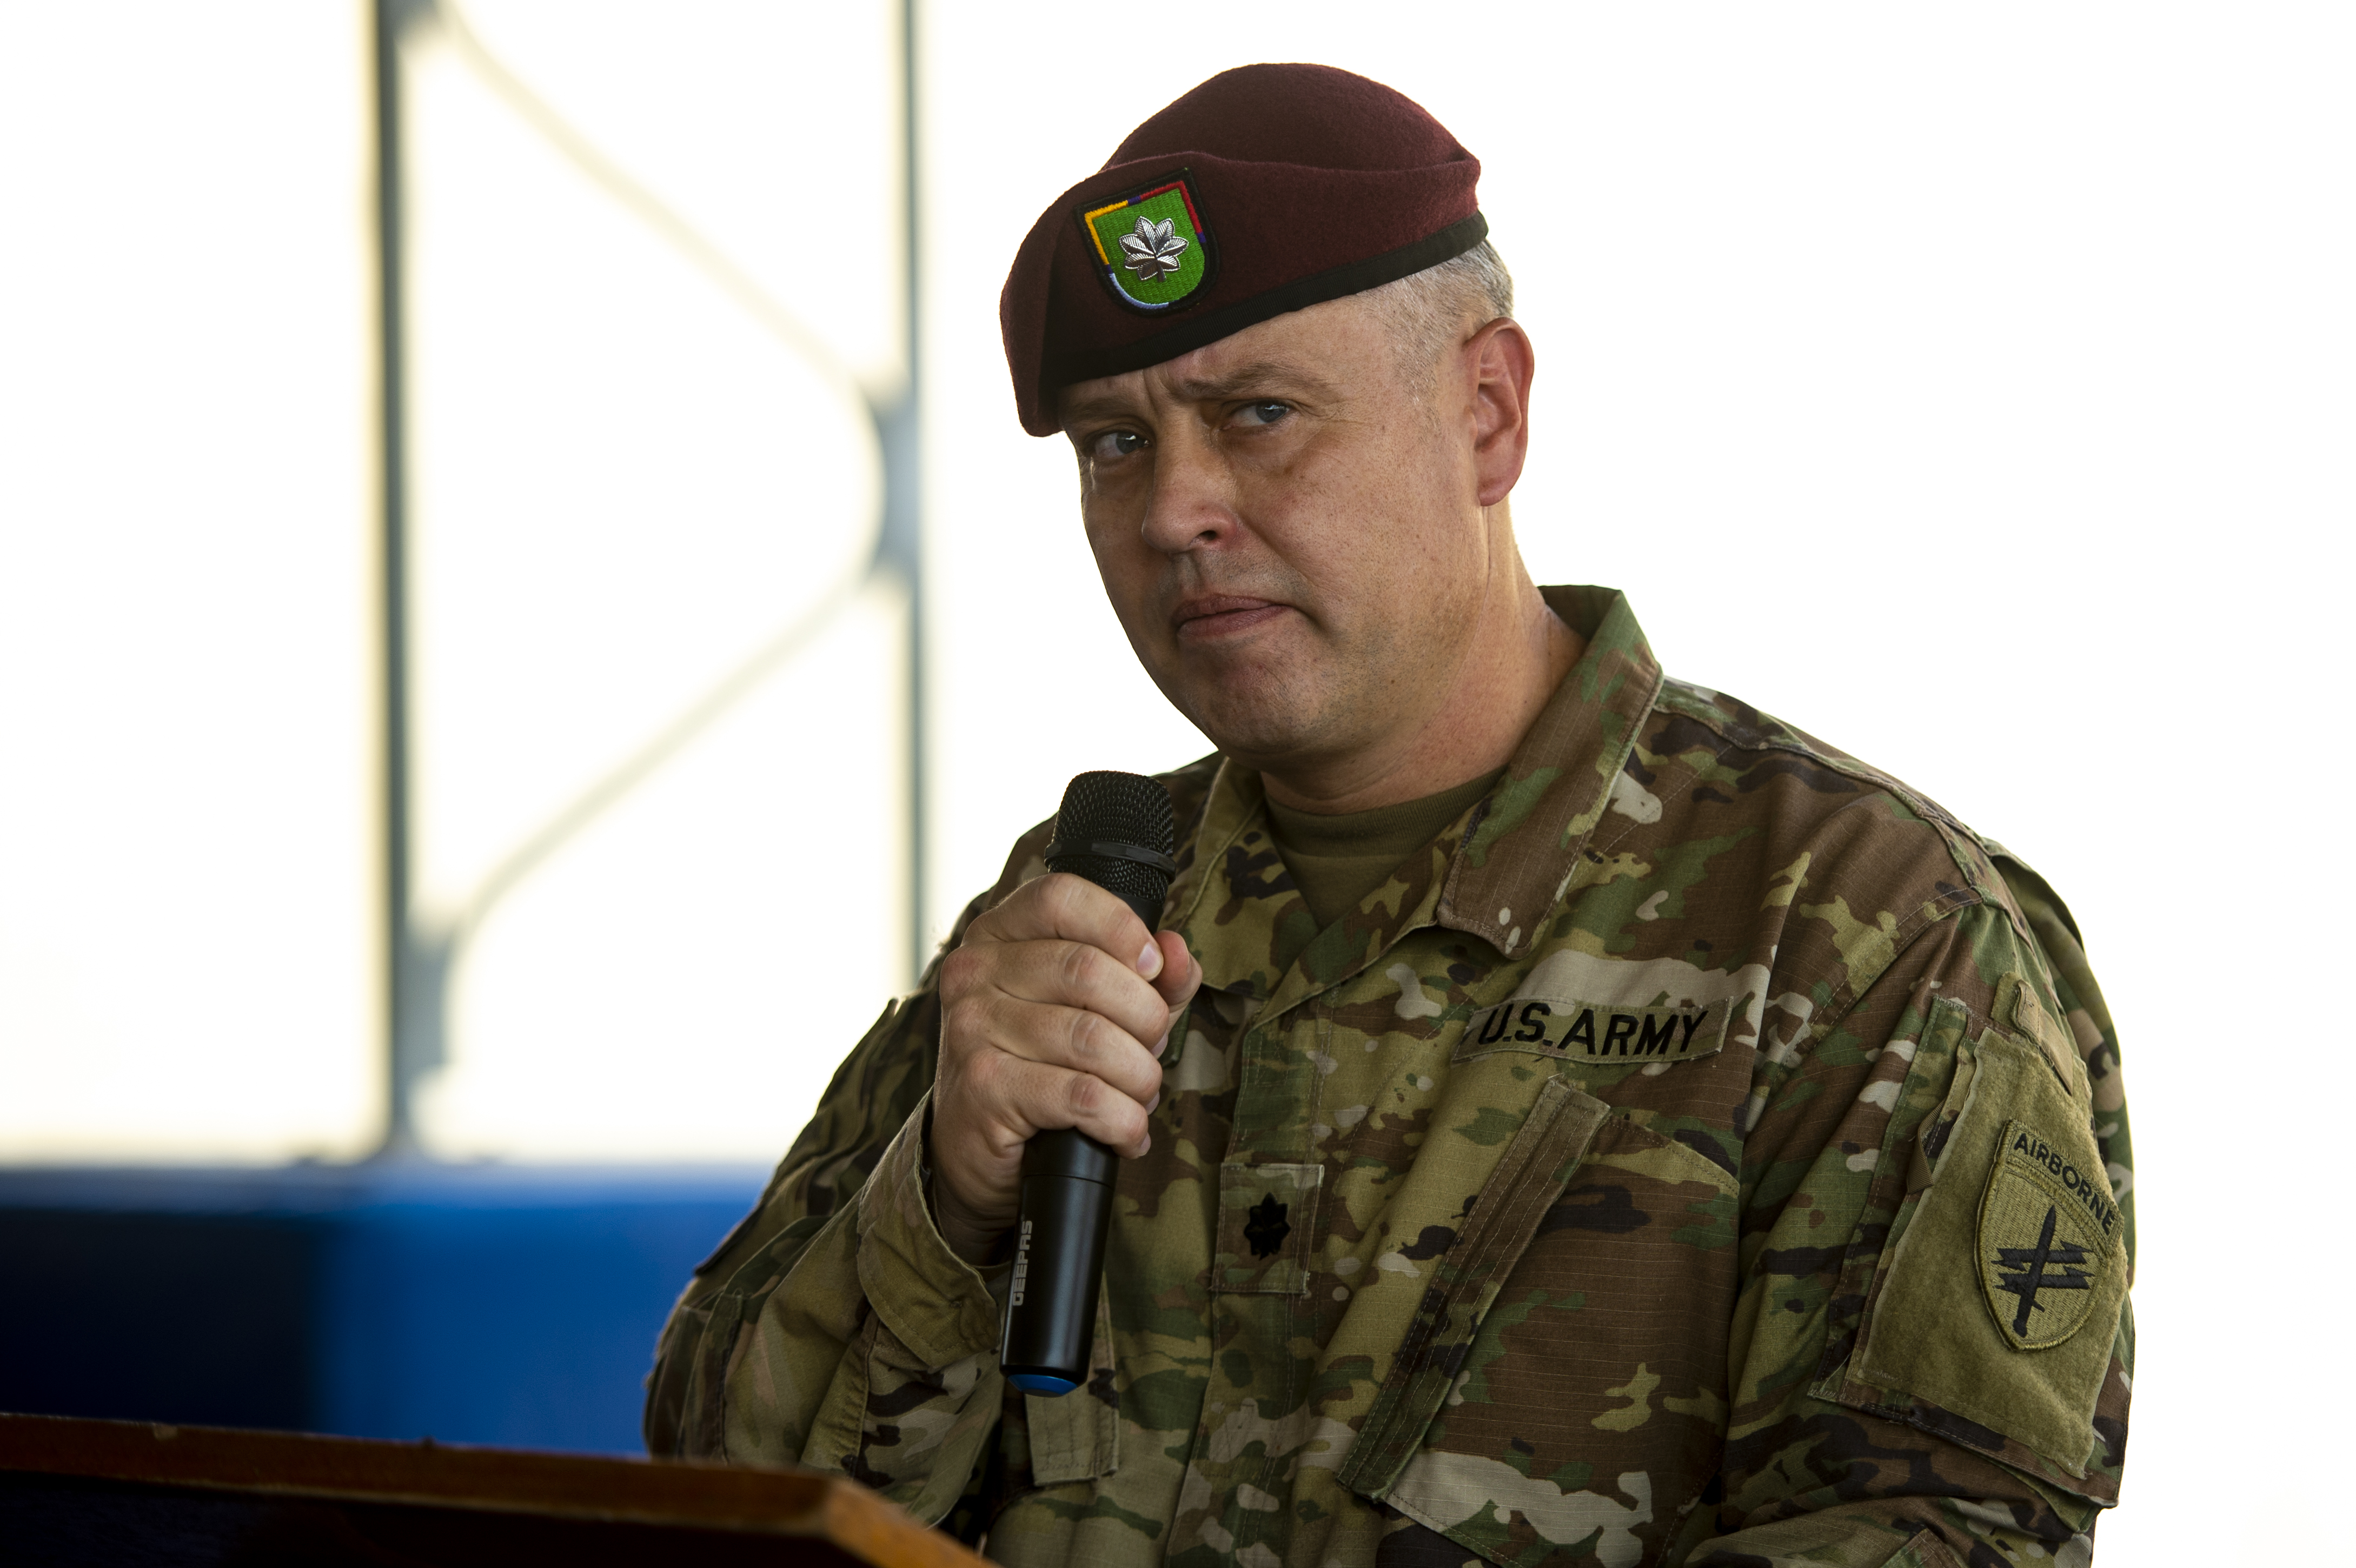 U.S. Army Lt. Col. Stefan Adamcik, commander 404th Civil Affairs Battalion, speaks during a transfer of authority ceremony on Camp Lemonnier, Djibouti, Oct. 13, 2018. The 404th CA Battalion transferred its authority to the 403rd CA Battalion, who will now continue the mission throughout the Horn of Africa. (U.S. Air Force photo by Senior Airman Scott Jackson)